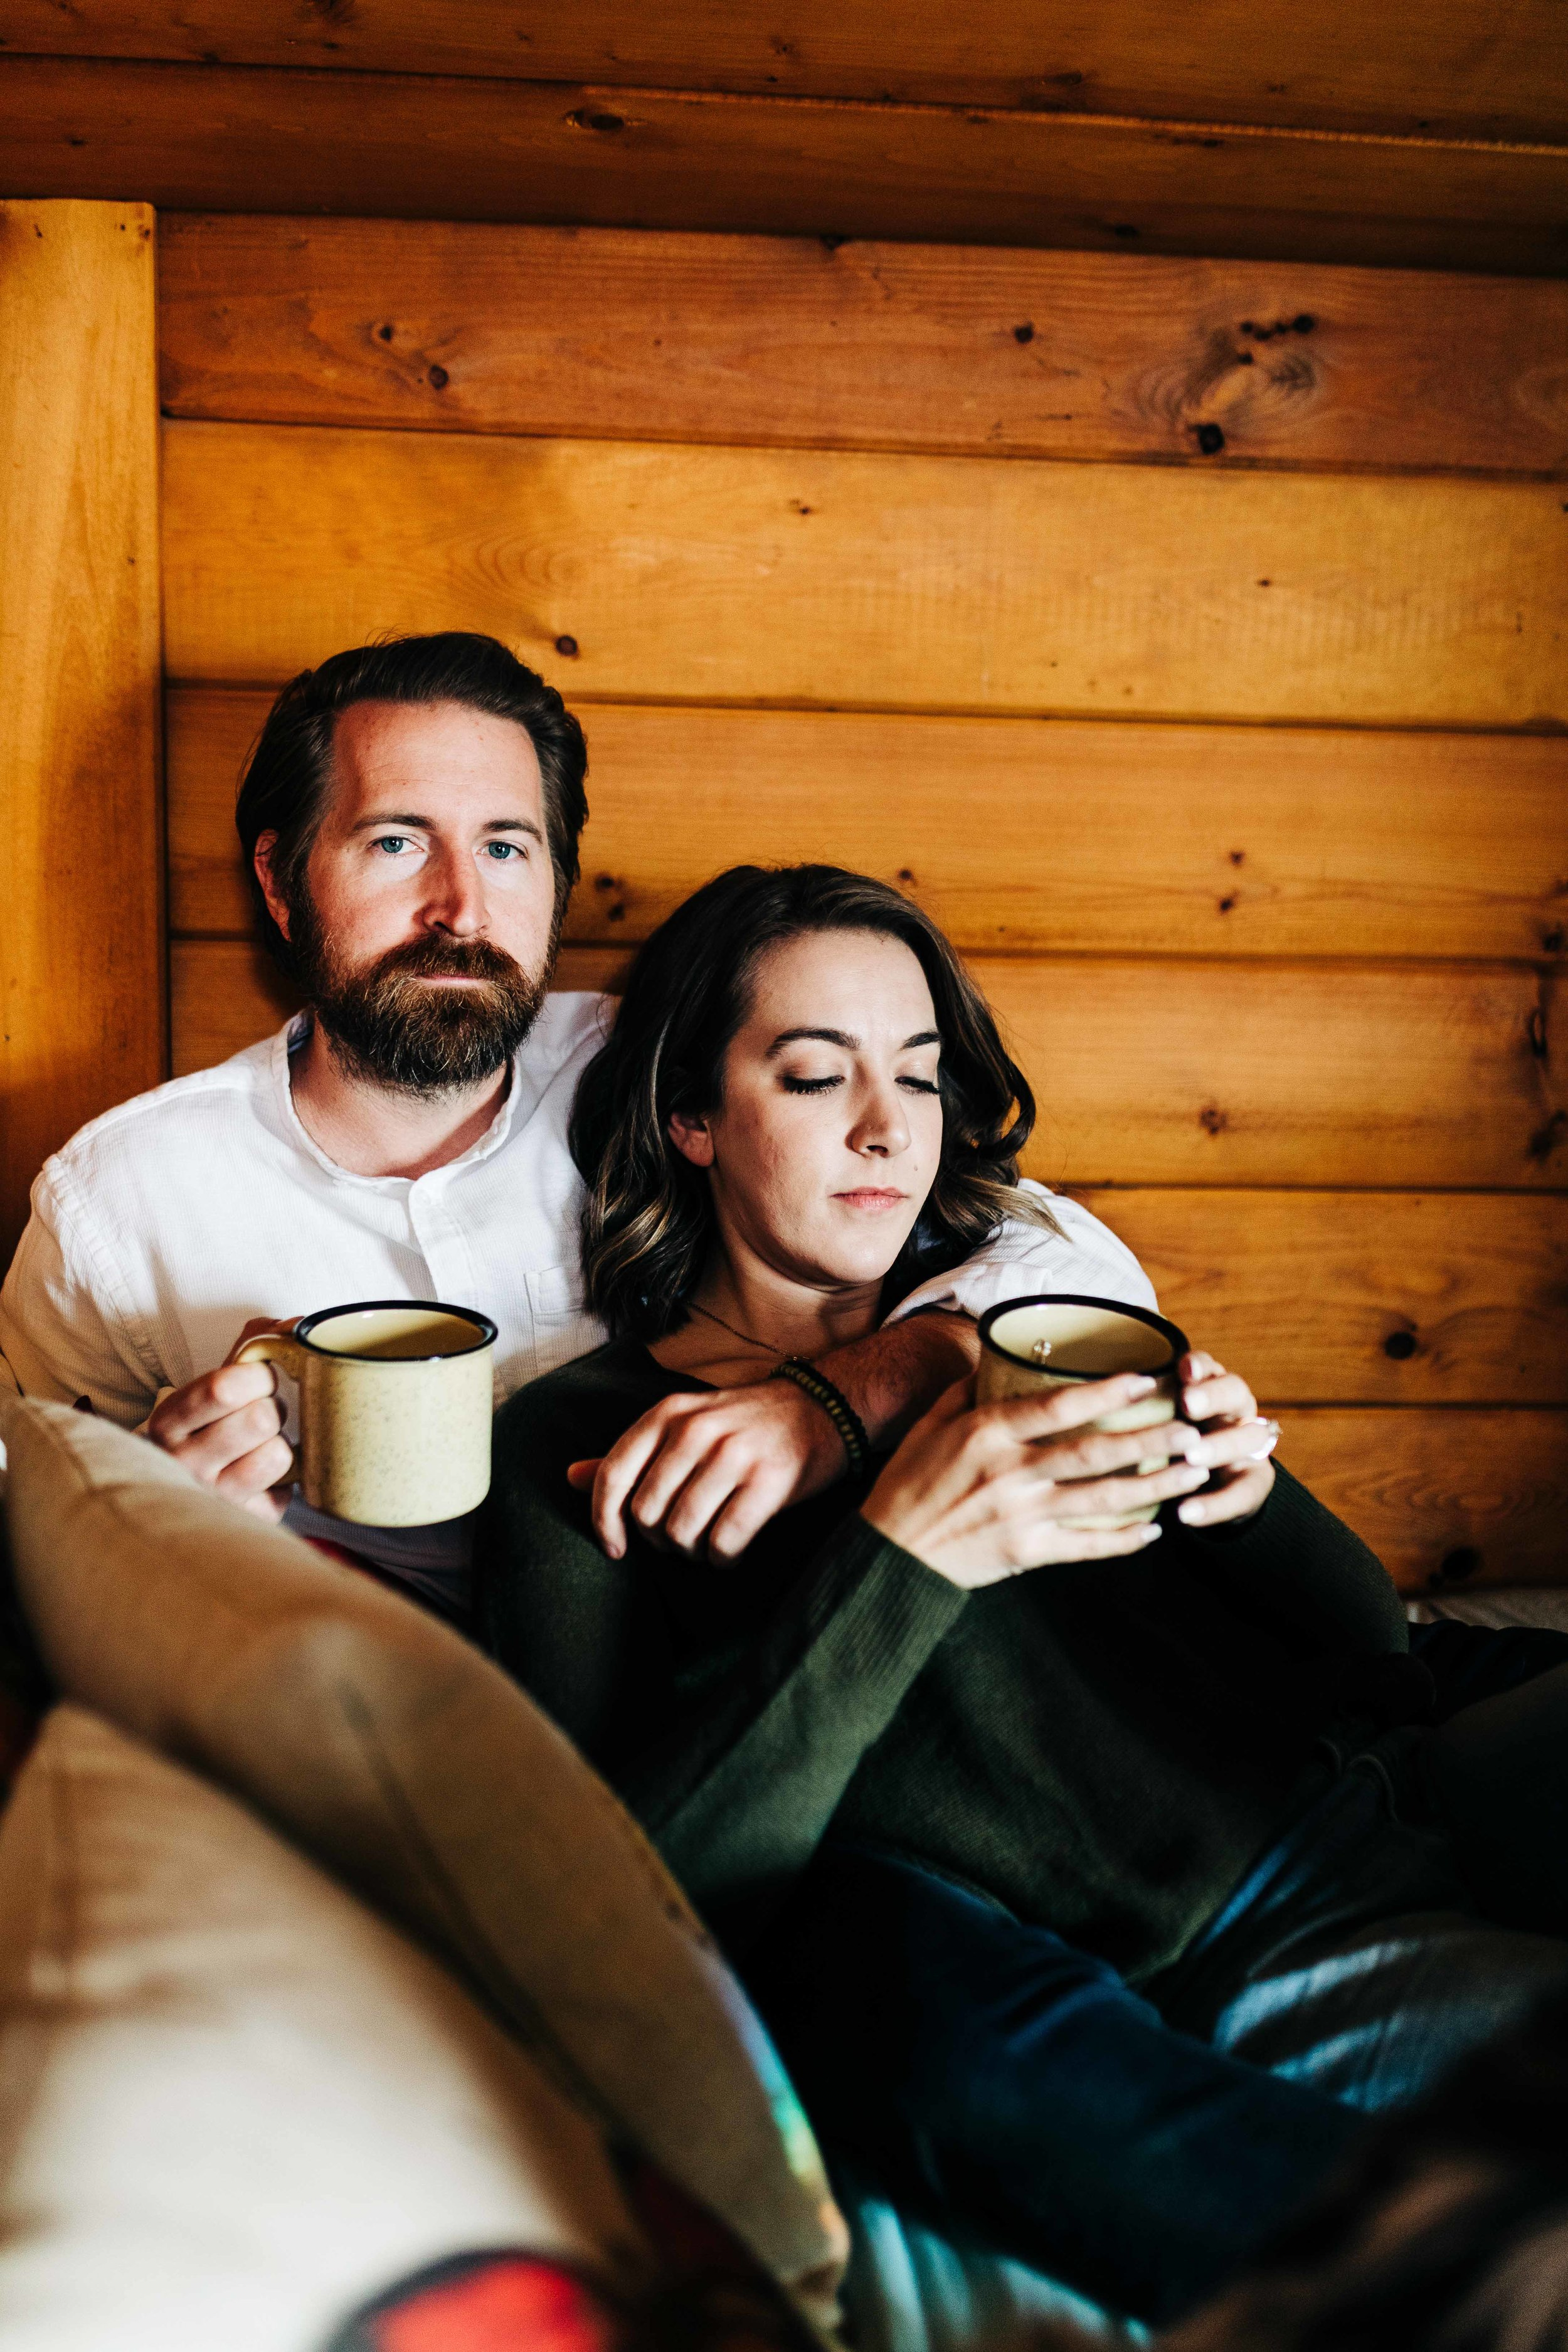 Hayley&Boomer_Joshua-Tree-Engagement-Photos_Tiny-Home_Southern-California-Wedding-Photographer_10